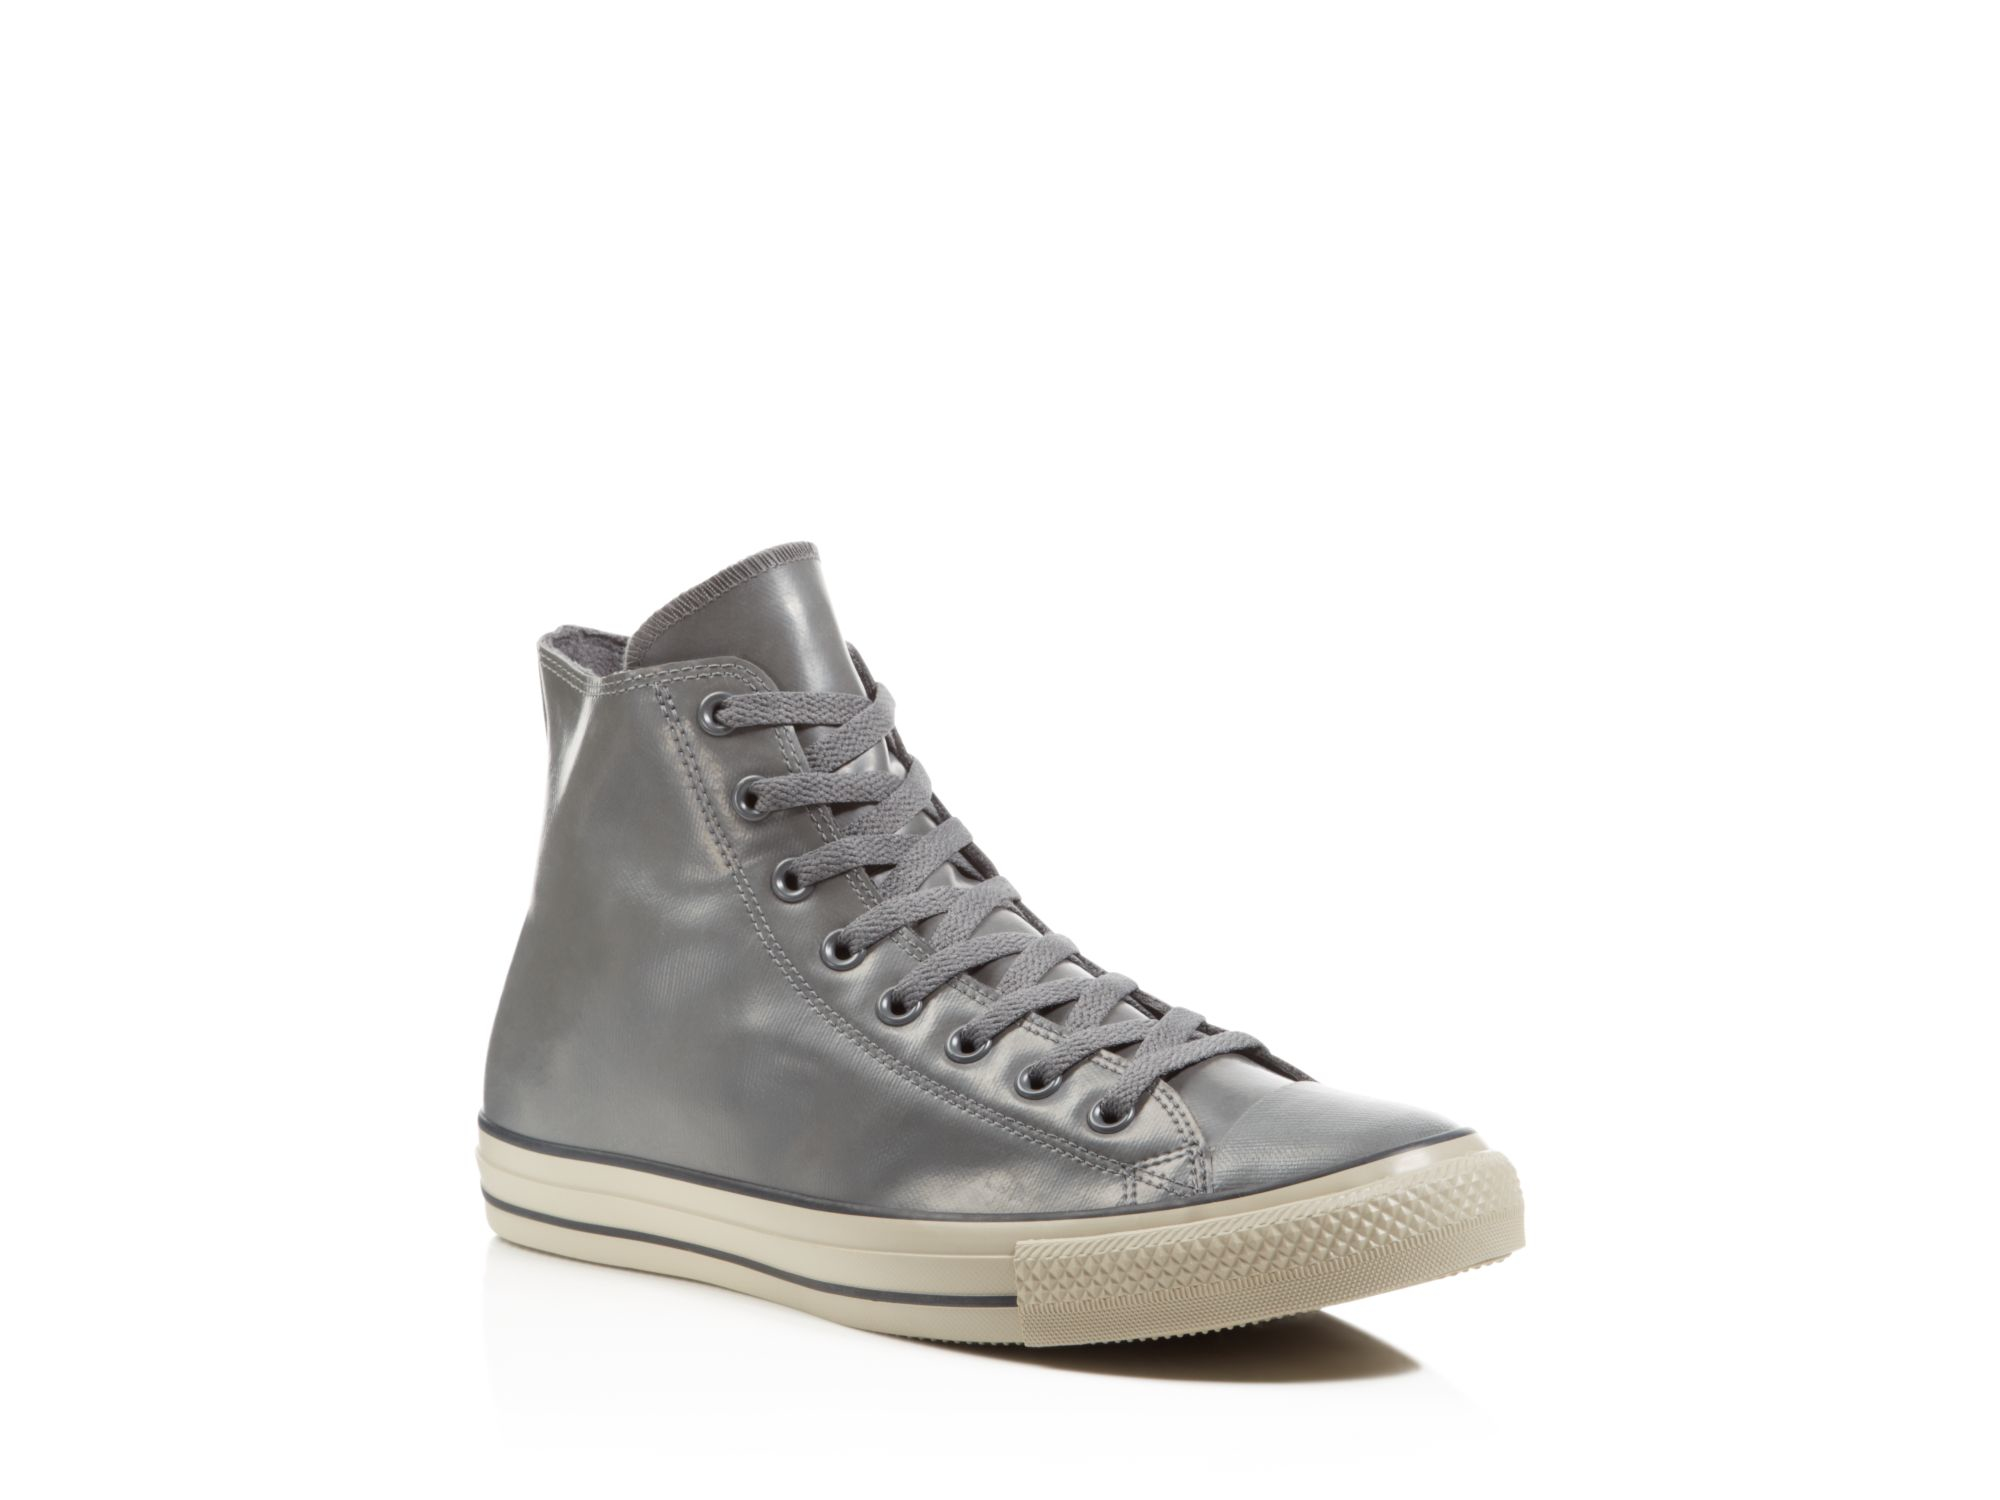 converse all star rubber high top sneakers in gray for men. Black Bedroom Furniture Sets. Home Design Ideas